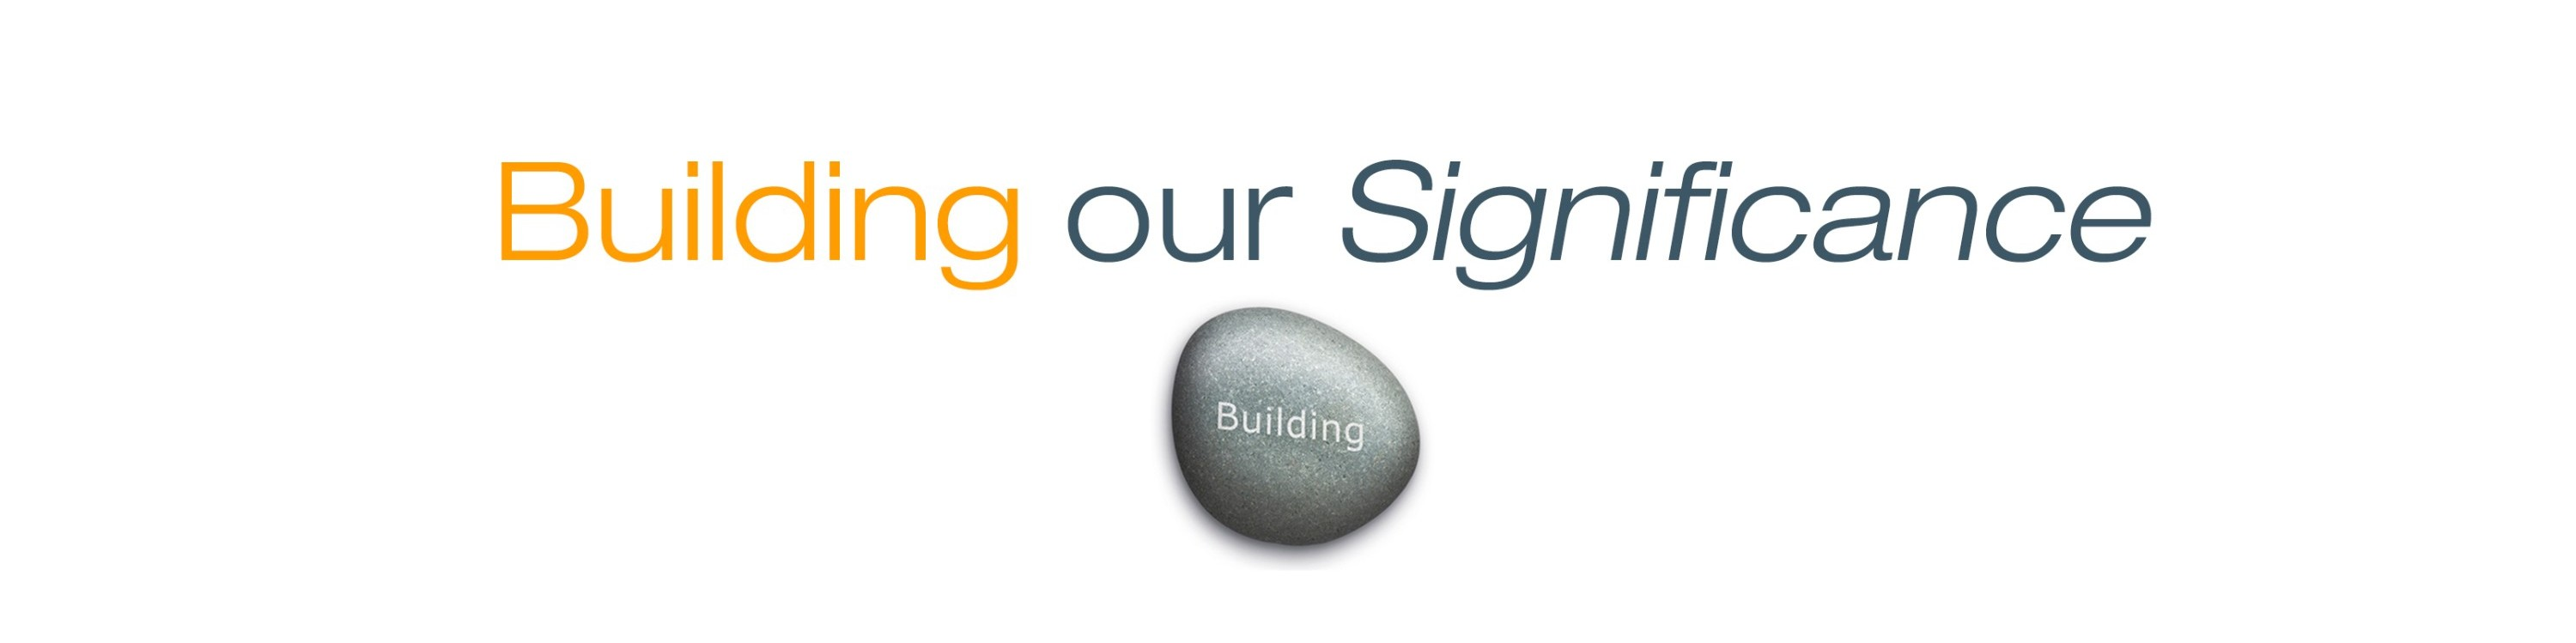 Building our Significance Logo